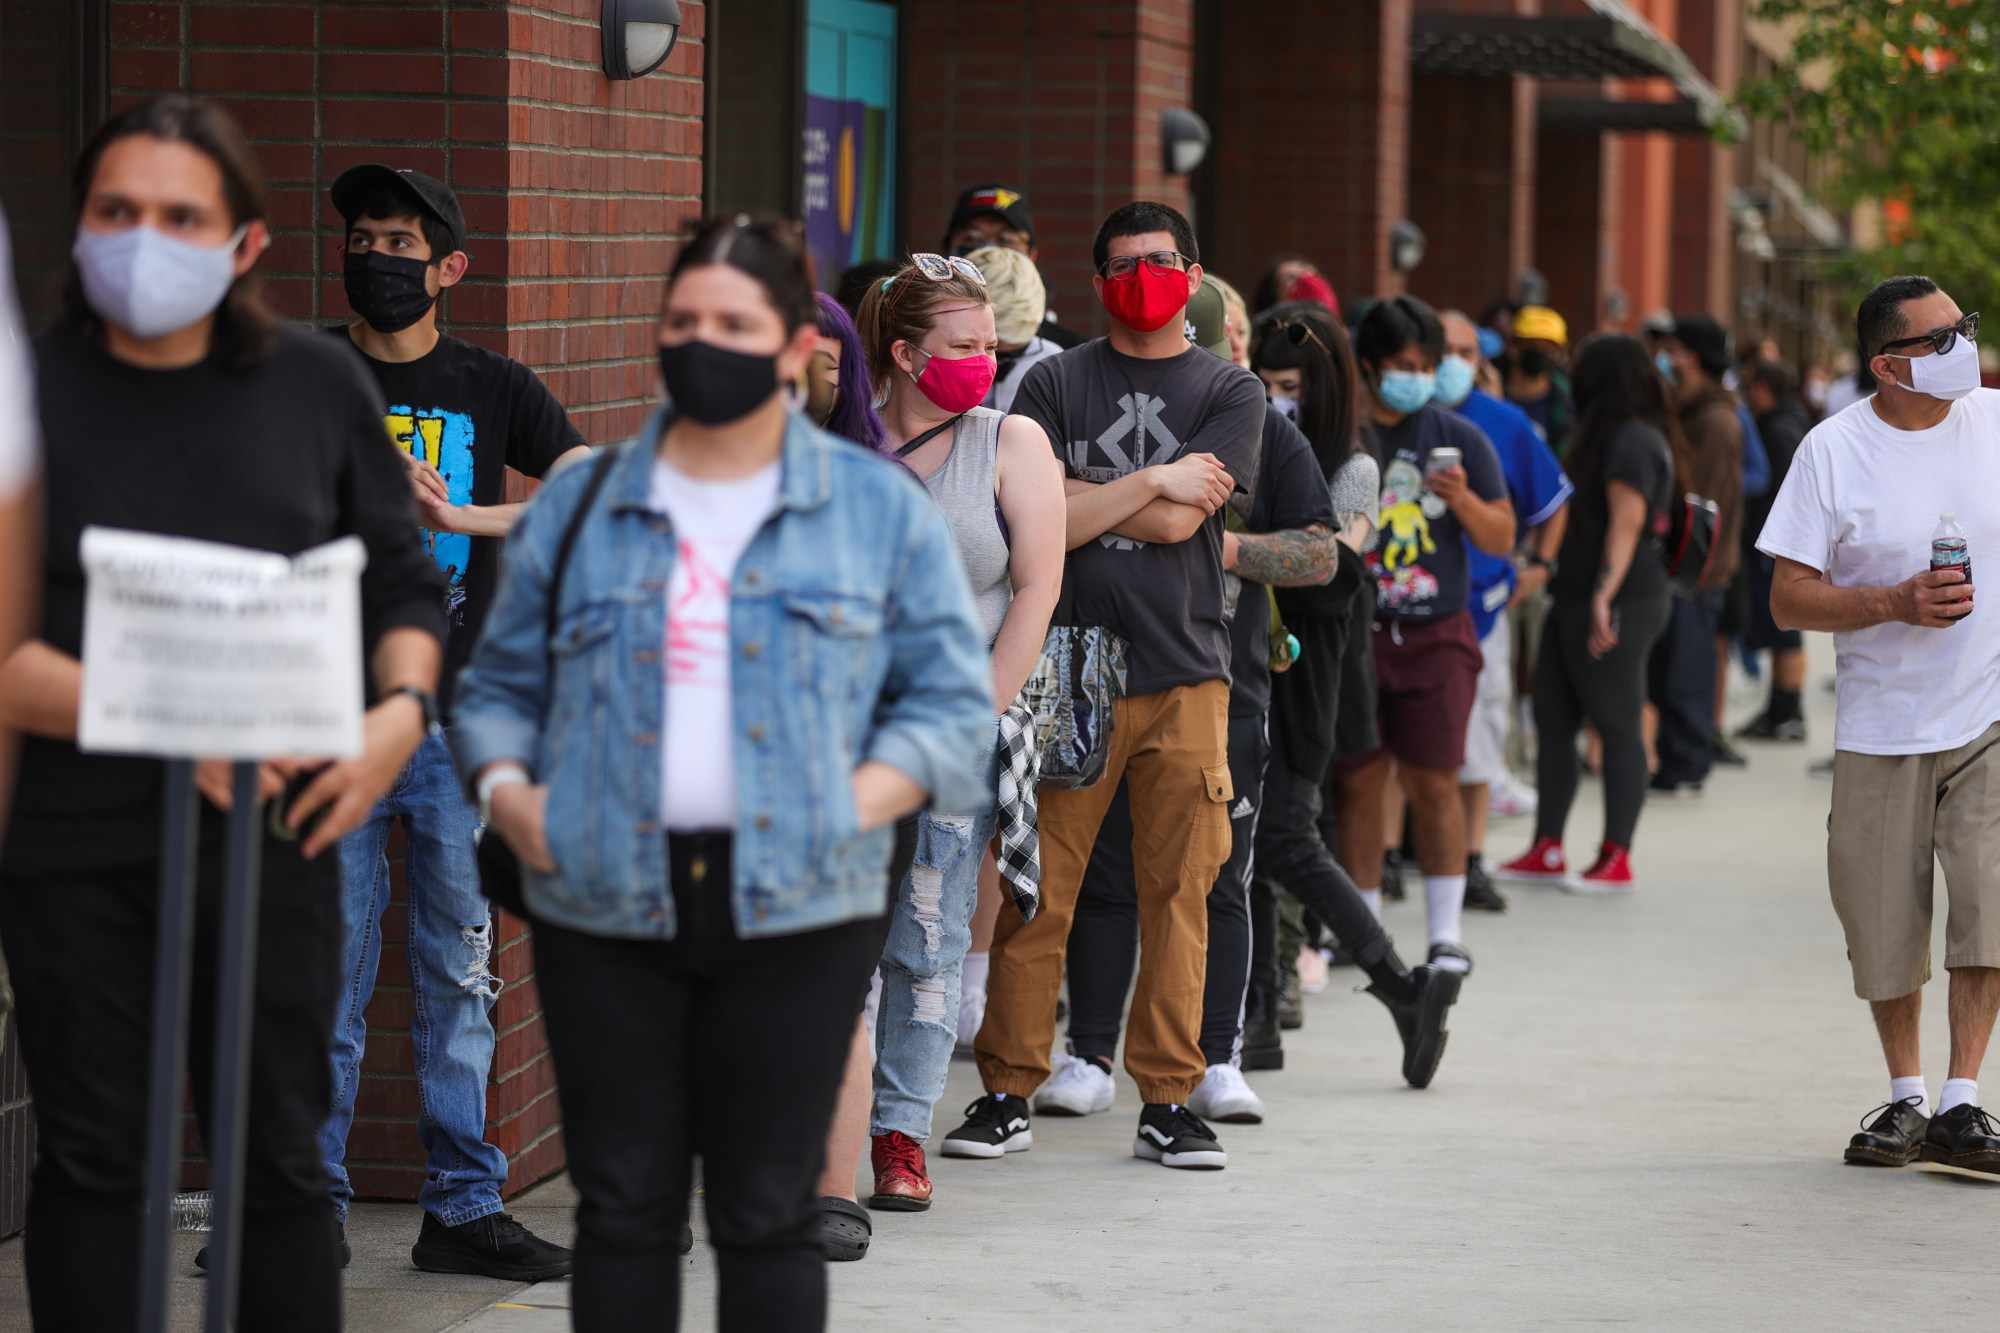 Customers wait in line to enter Amoeba Music during their grand re-opening at their new location on Hollywood Boulevard on April 1, 2021 in Los Angeles. (Rich Fury/Getty Images)